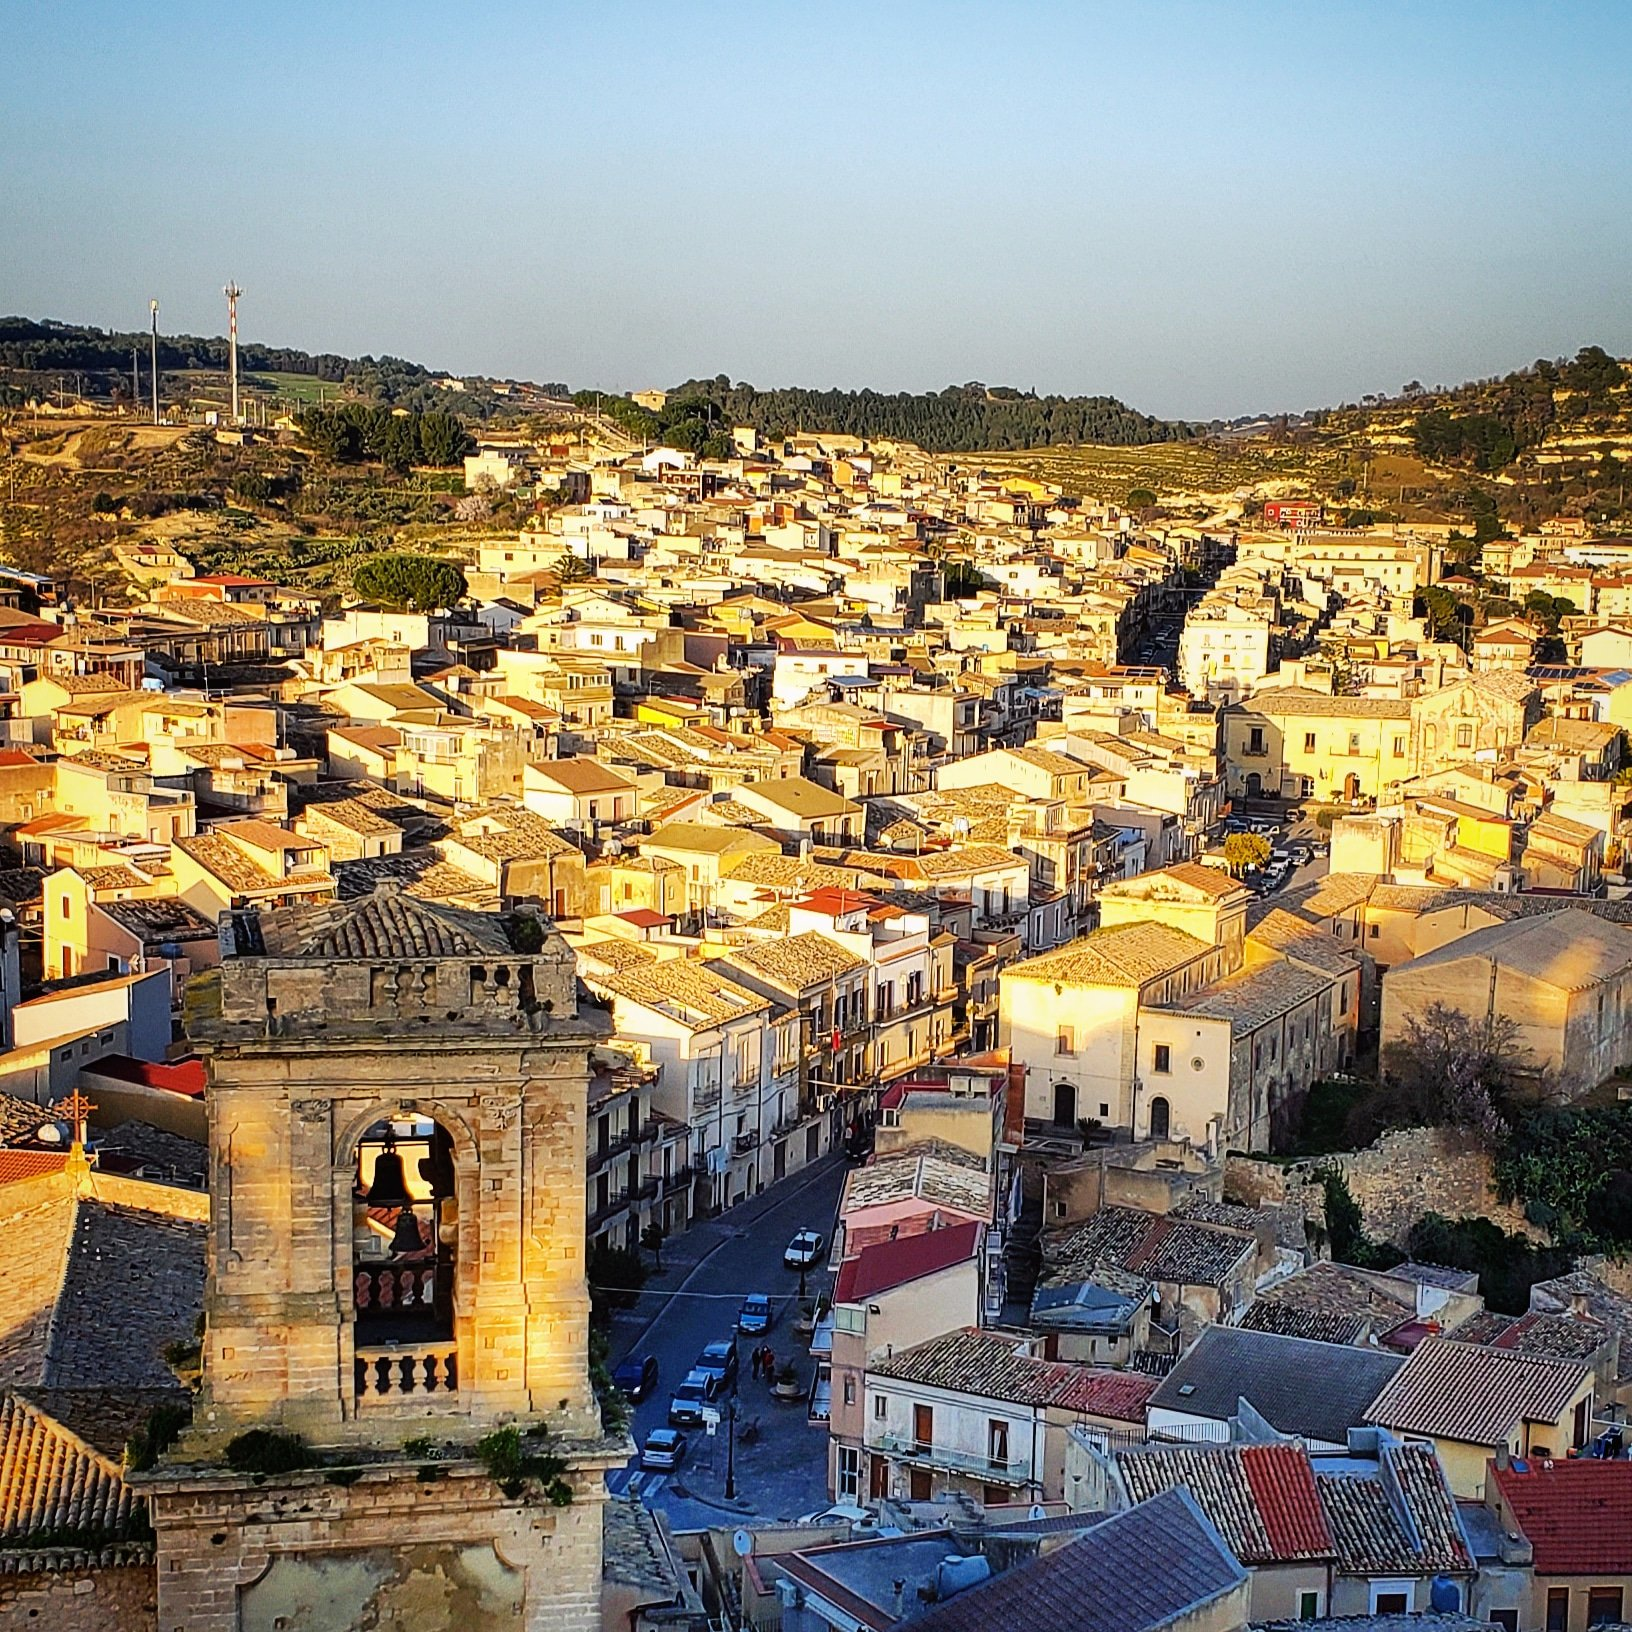 52 Reasons to Love Sicily   #47. Storybook Mountain Towns